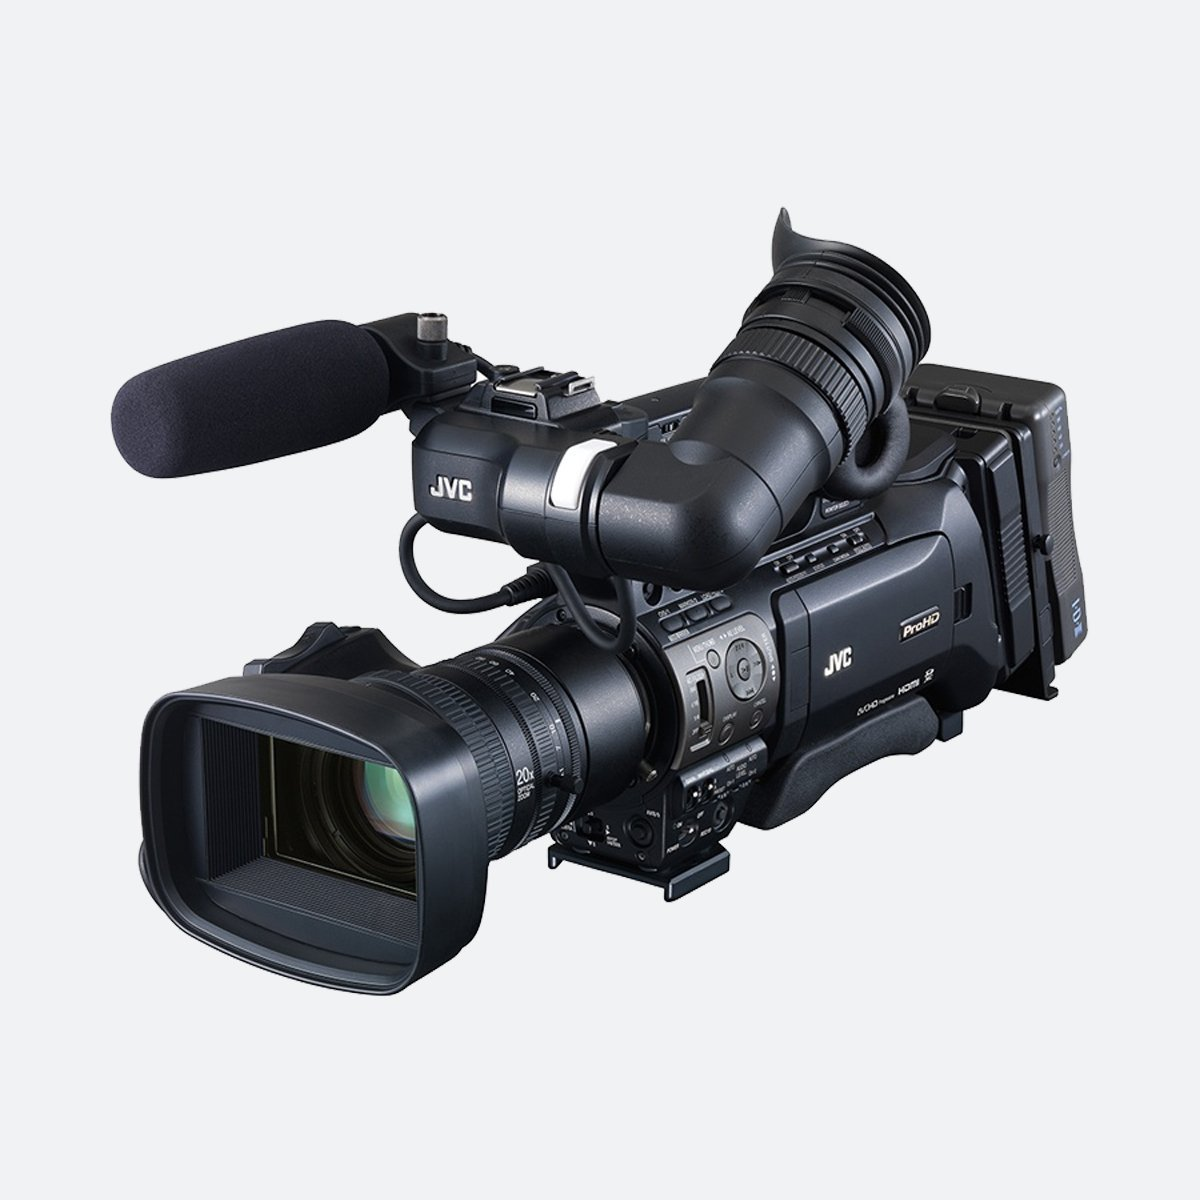 JVC GY-HM890 Full HD shoulder-mount ENG/studio camcorder